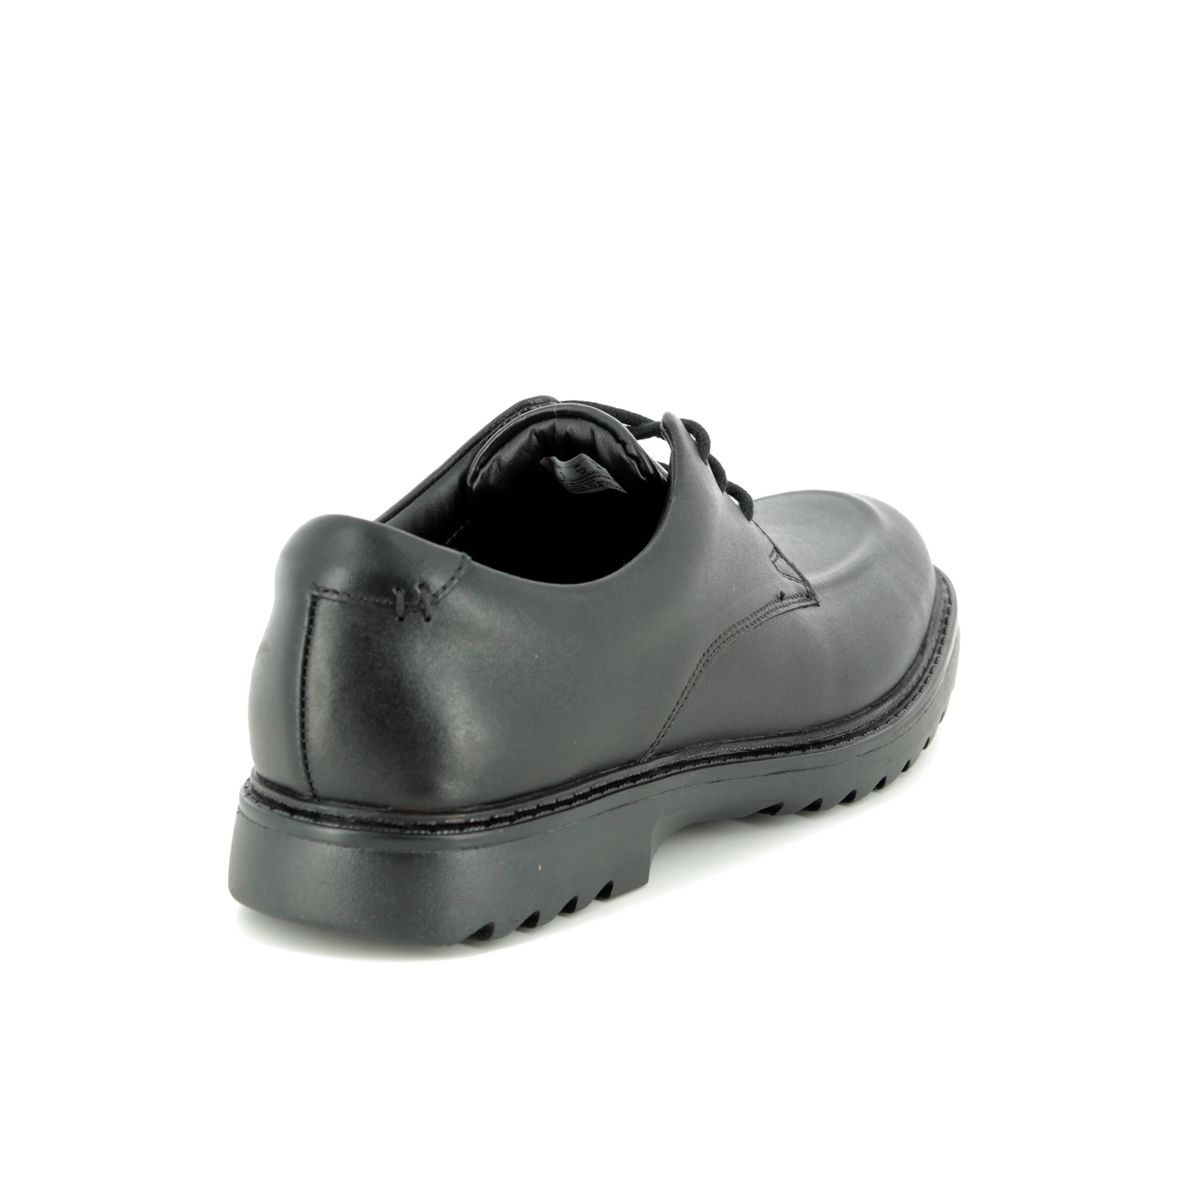 0ab6f0d08 Clarks School Shoes - Black leather - 3489 47G ASHER GROVE